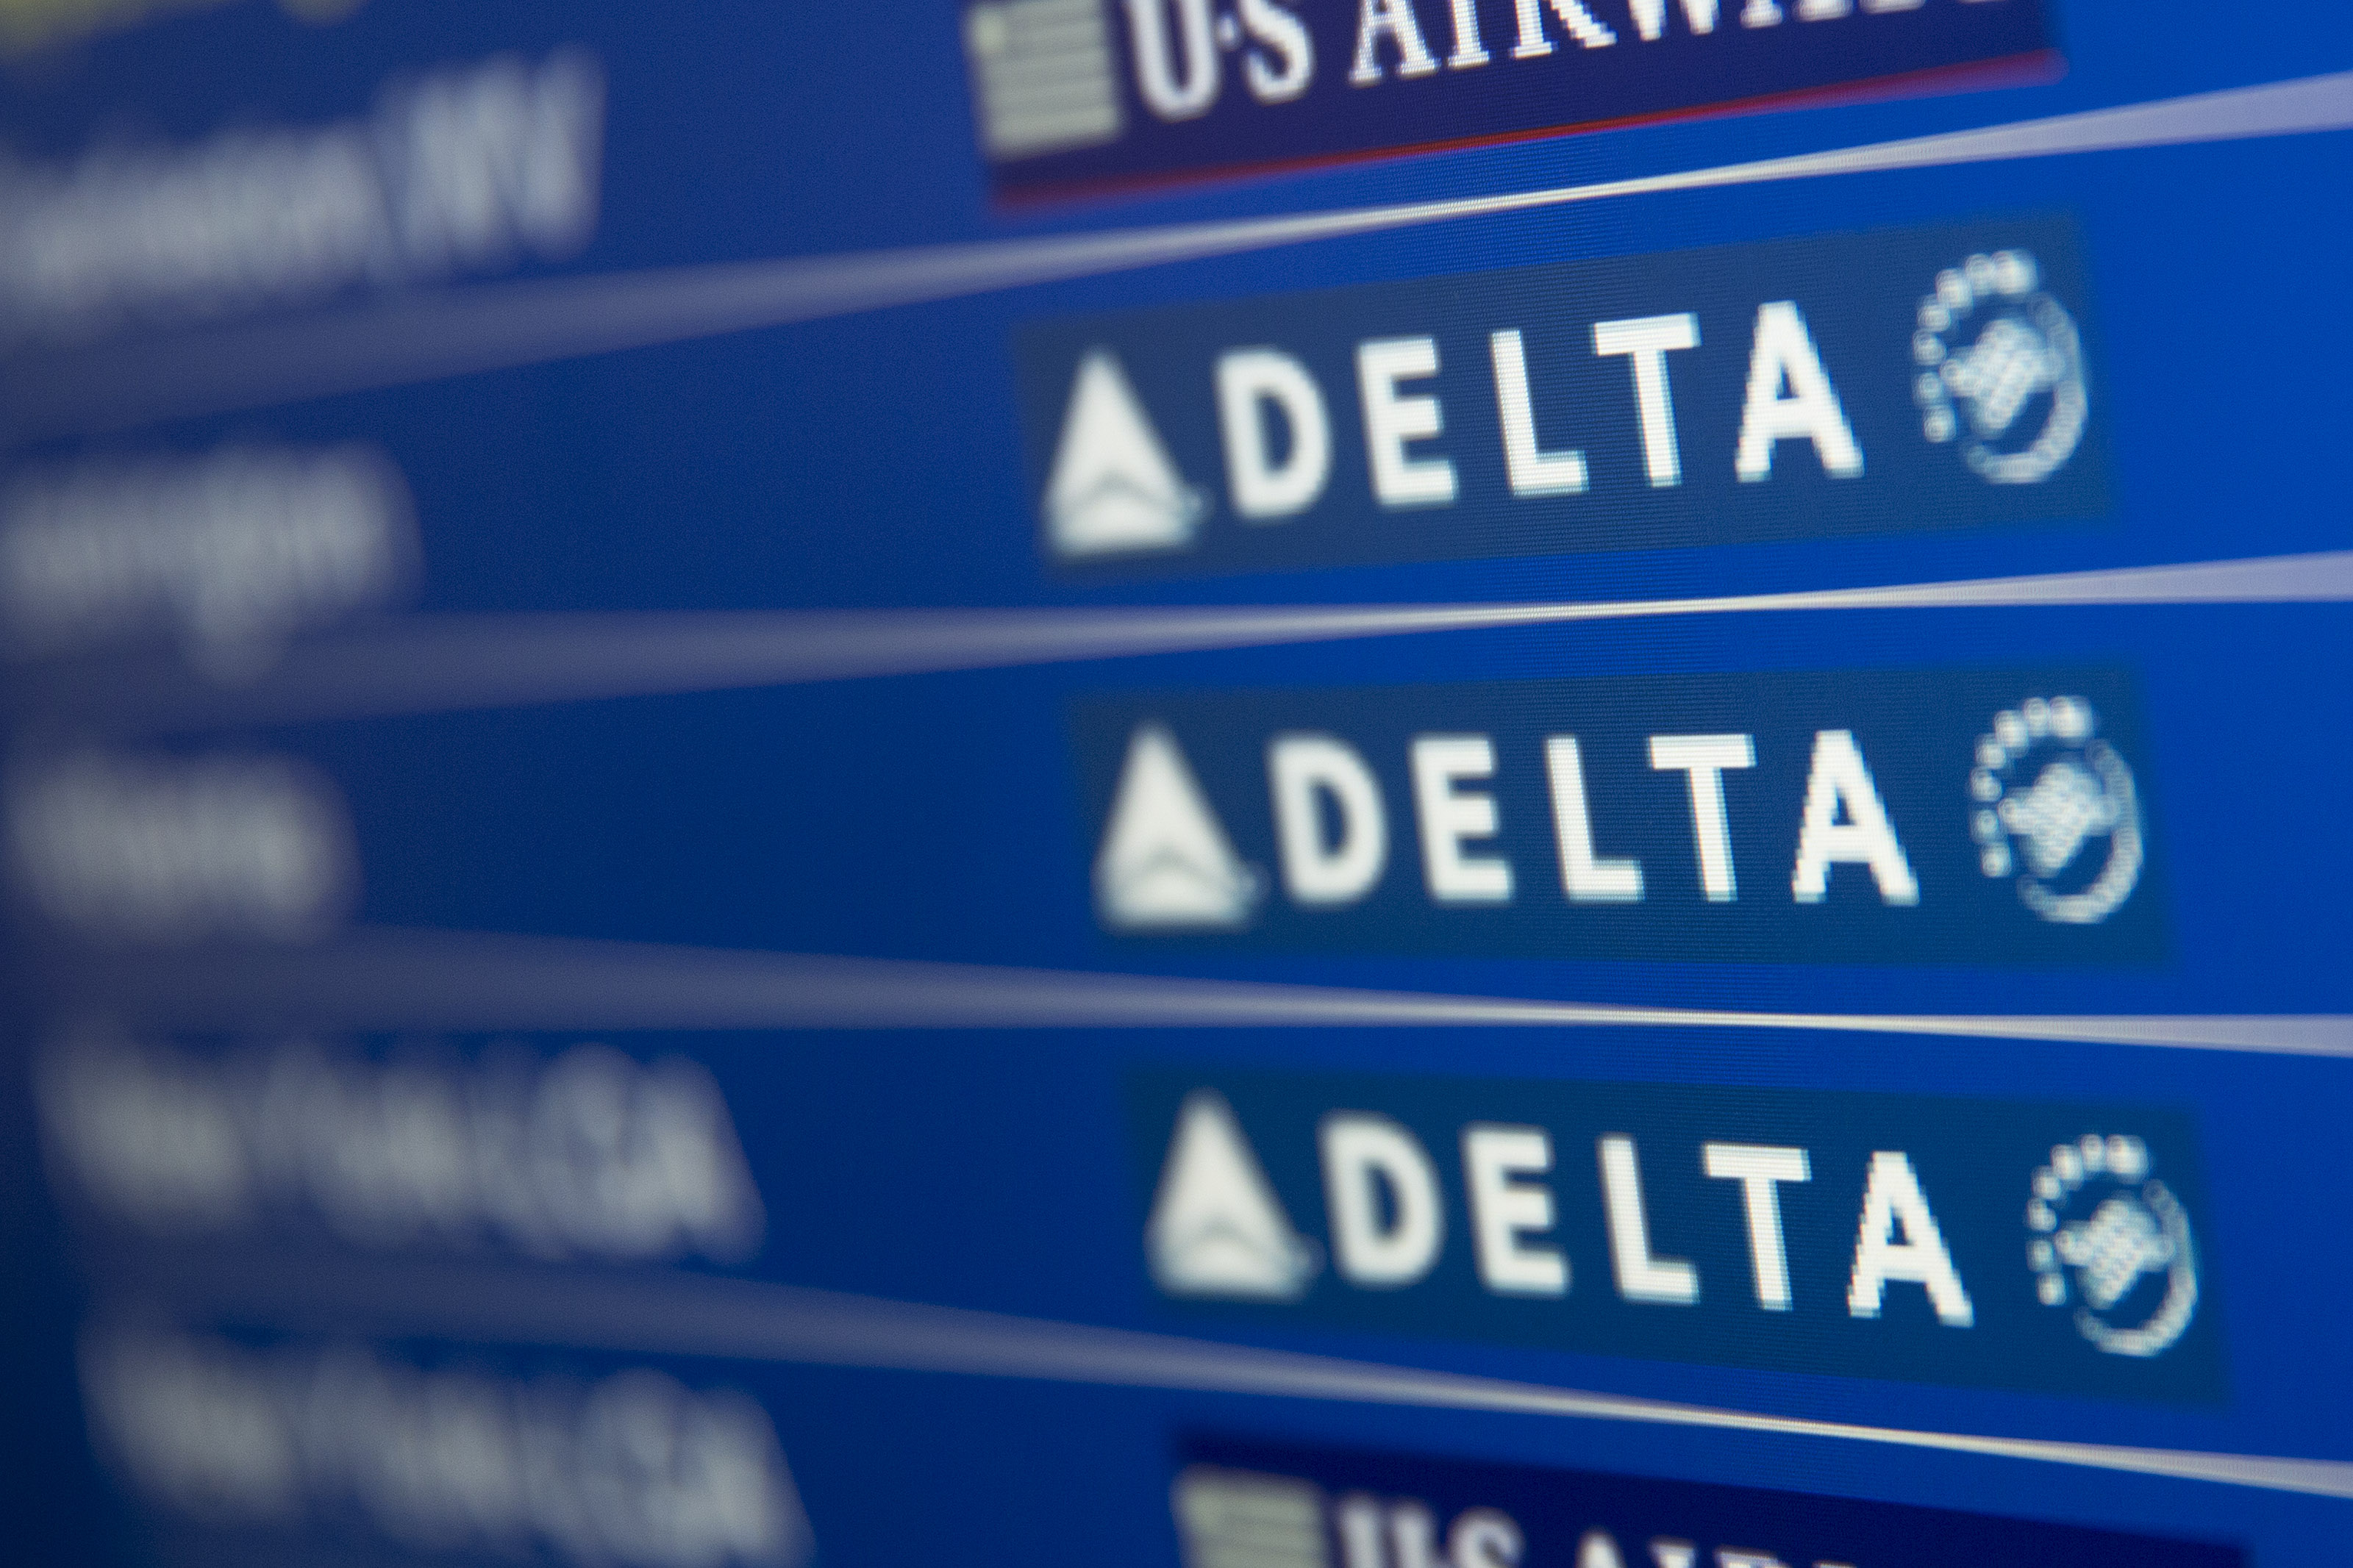 Delta fare hikes may happen this year.